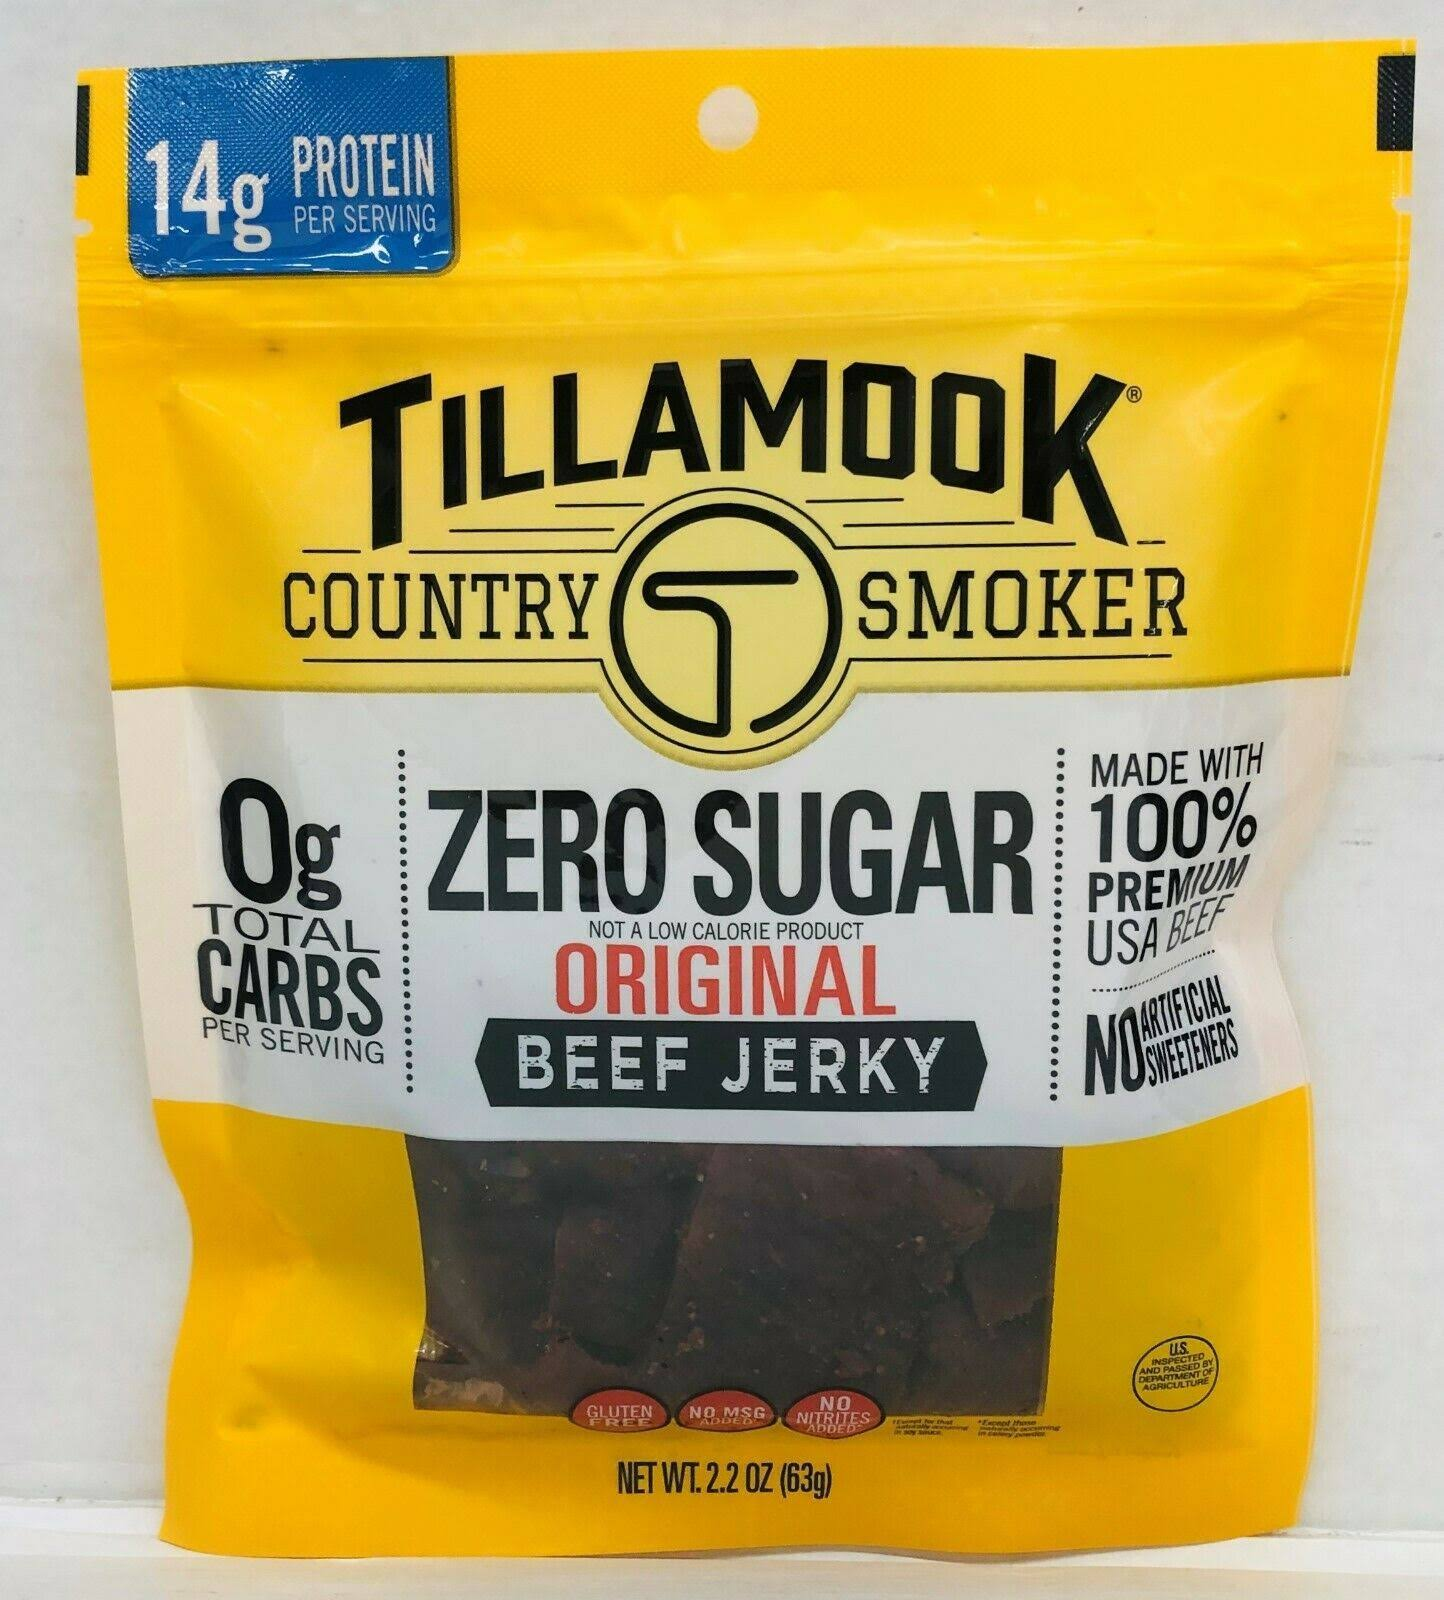 Tillamook Country Smoker Zero Sugar Original Beef Jerky - 2.2oz